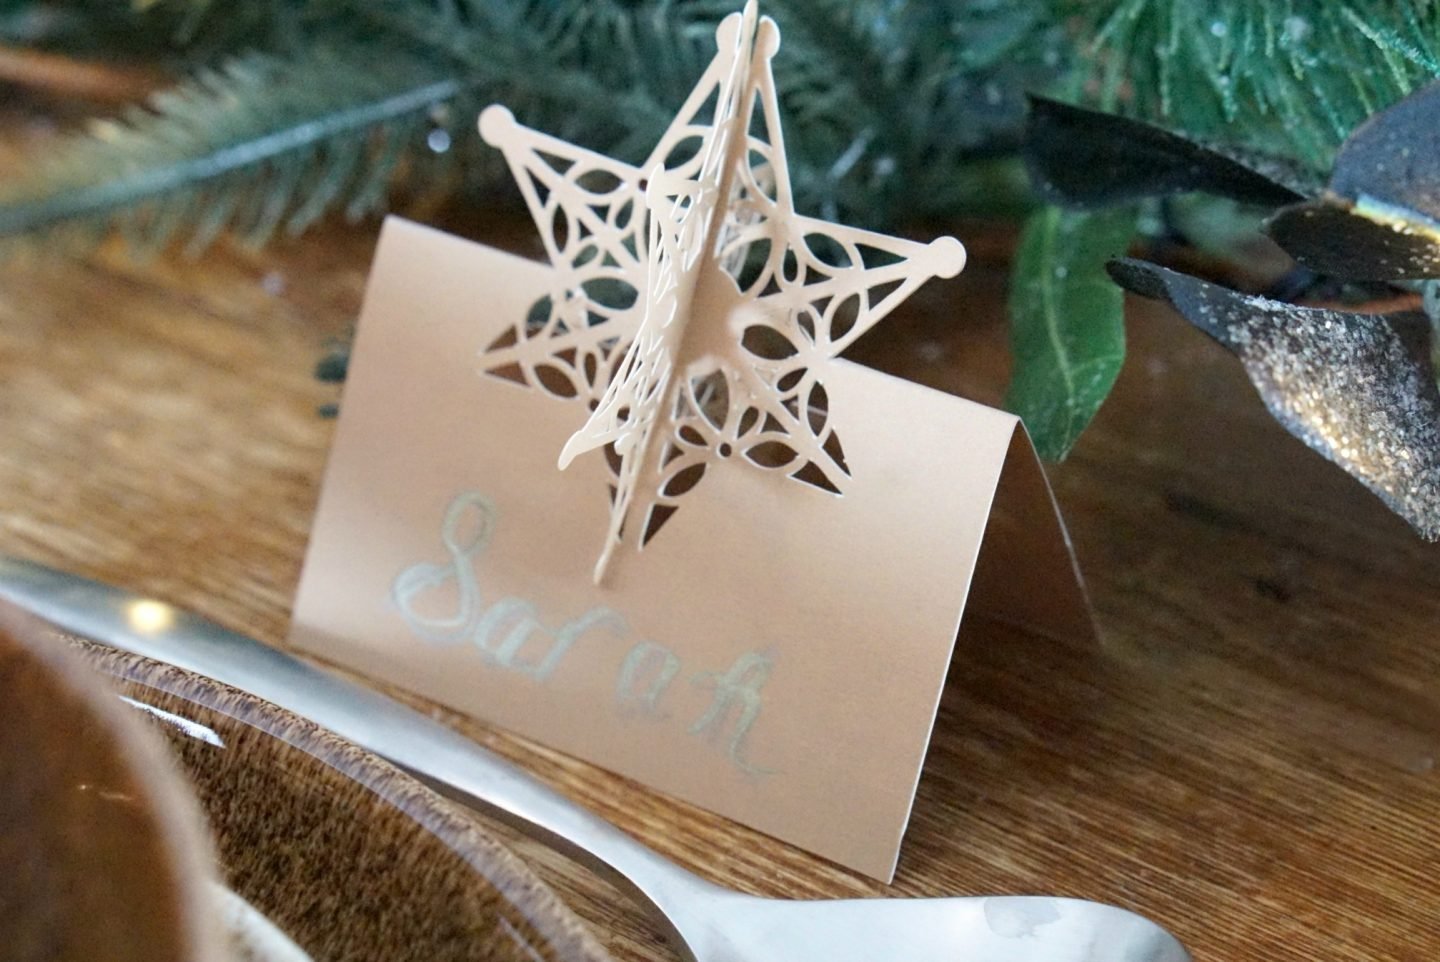 Home Made Snow Flake Place Card from Cricut Air www.extraordinarychaos.com